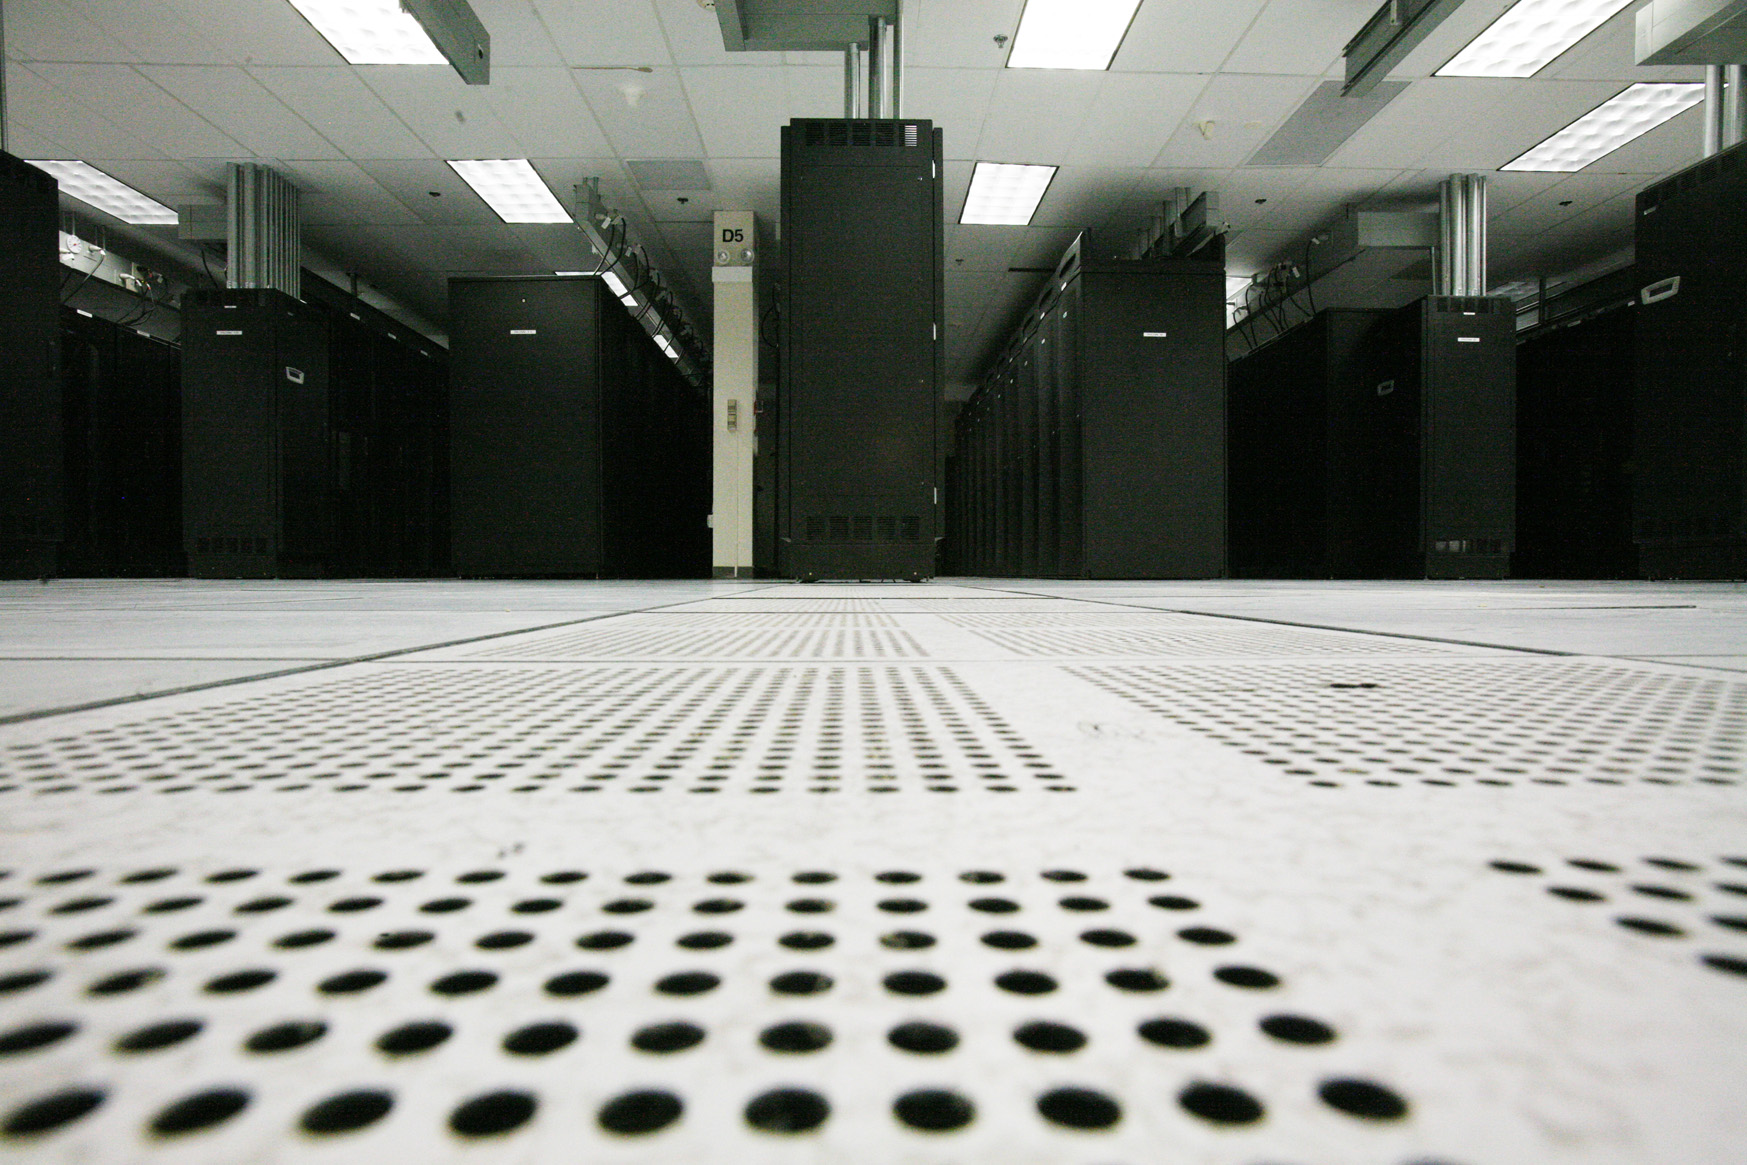 Floor Perforated Tiles Server Rooms : Fujitsu expands sunnyvale data center to handle times